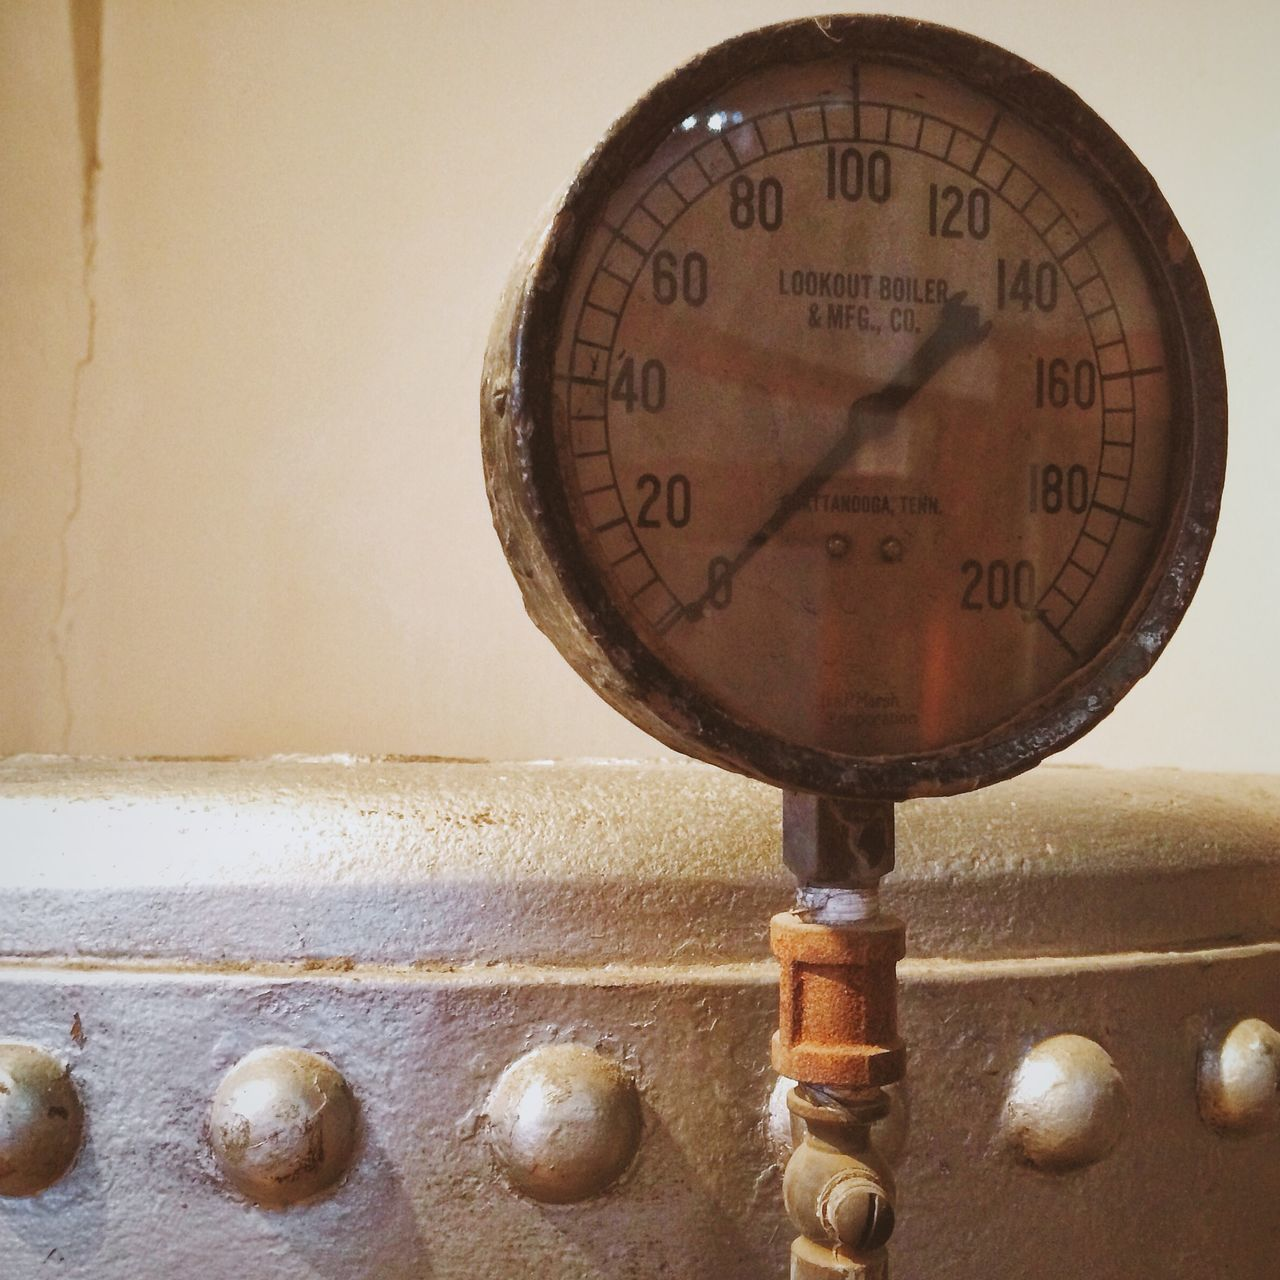 Close-Up Of Pressure Gauge